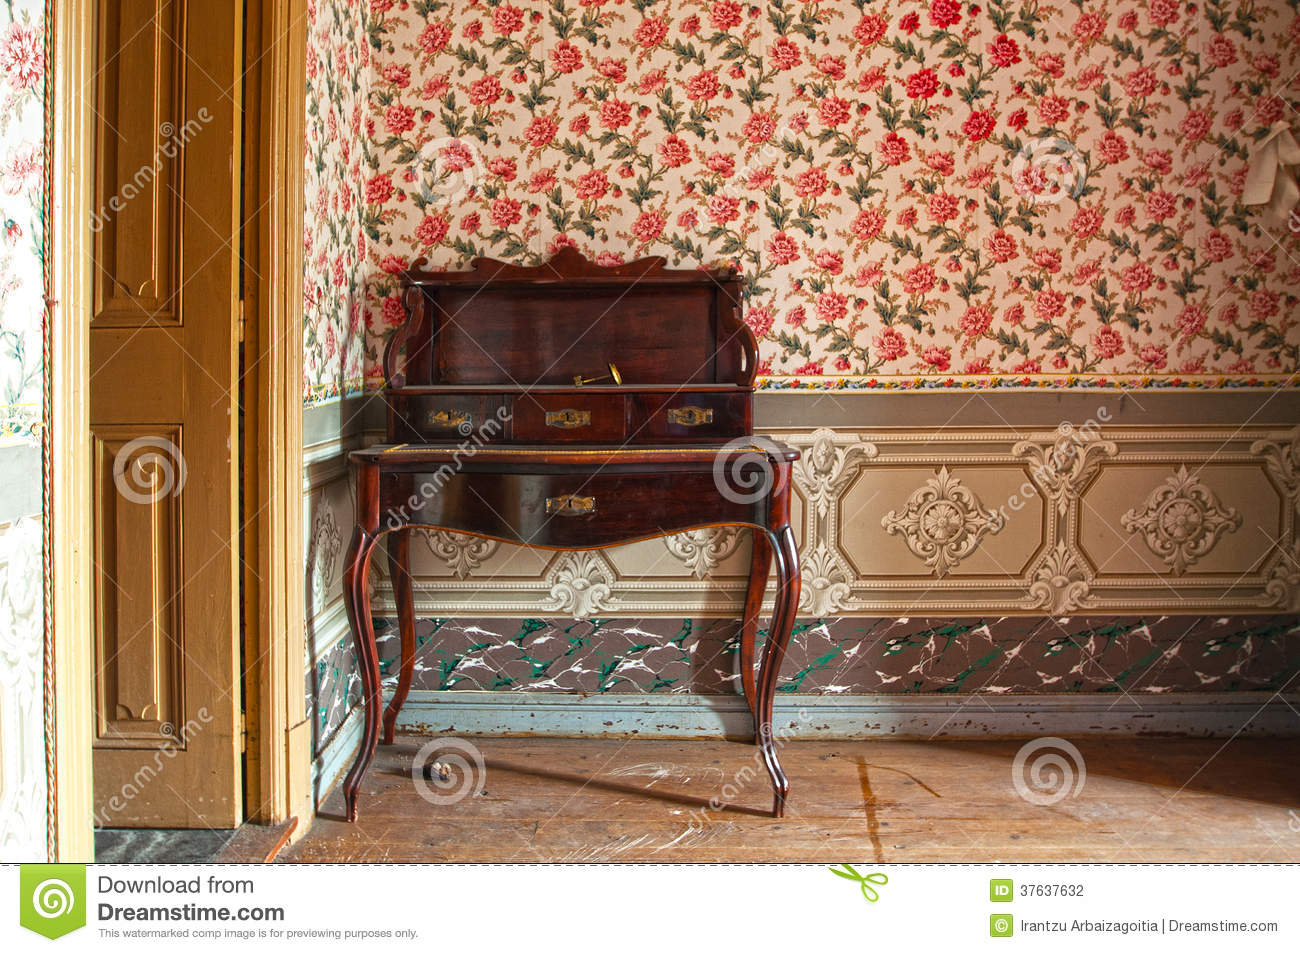 Antique Wooden Desk, Furniture, In Old House Stock Photo   Image Of Style,  Decor: 37637632